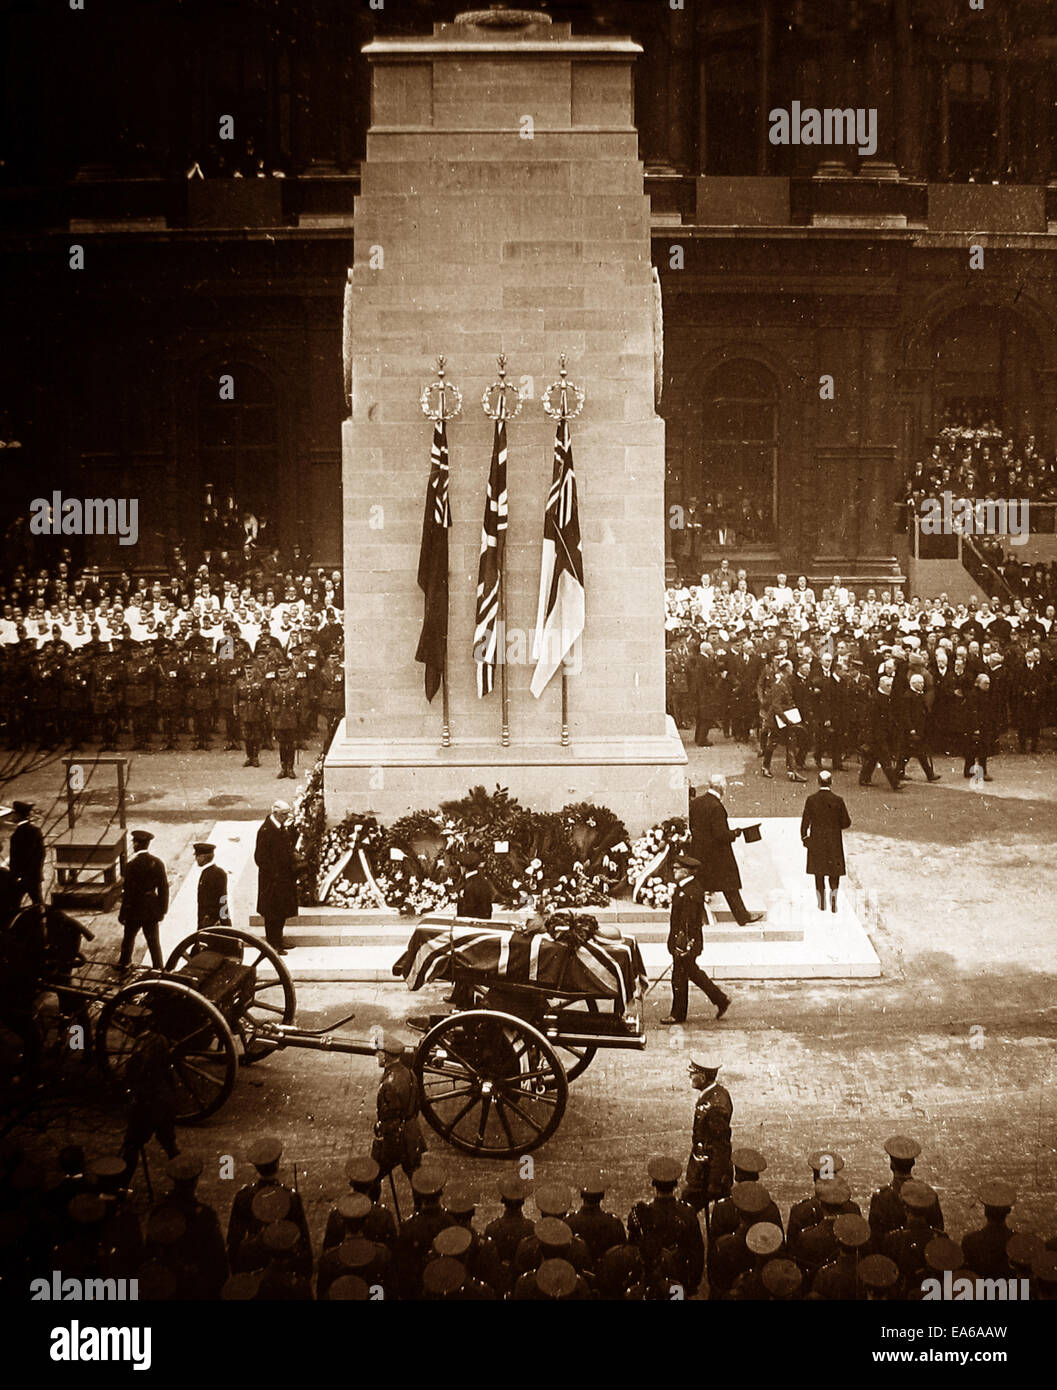 Cortege of the Unknown Warrior passing the Cenotaph in London - Stock Image